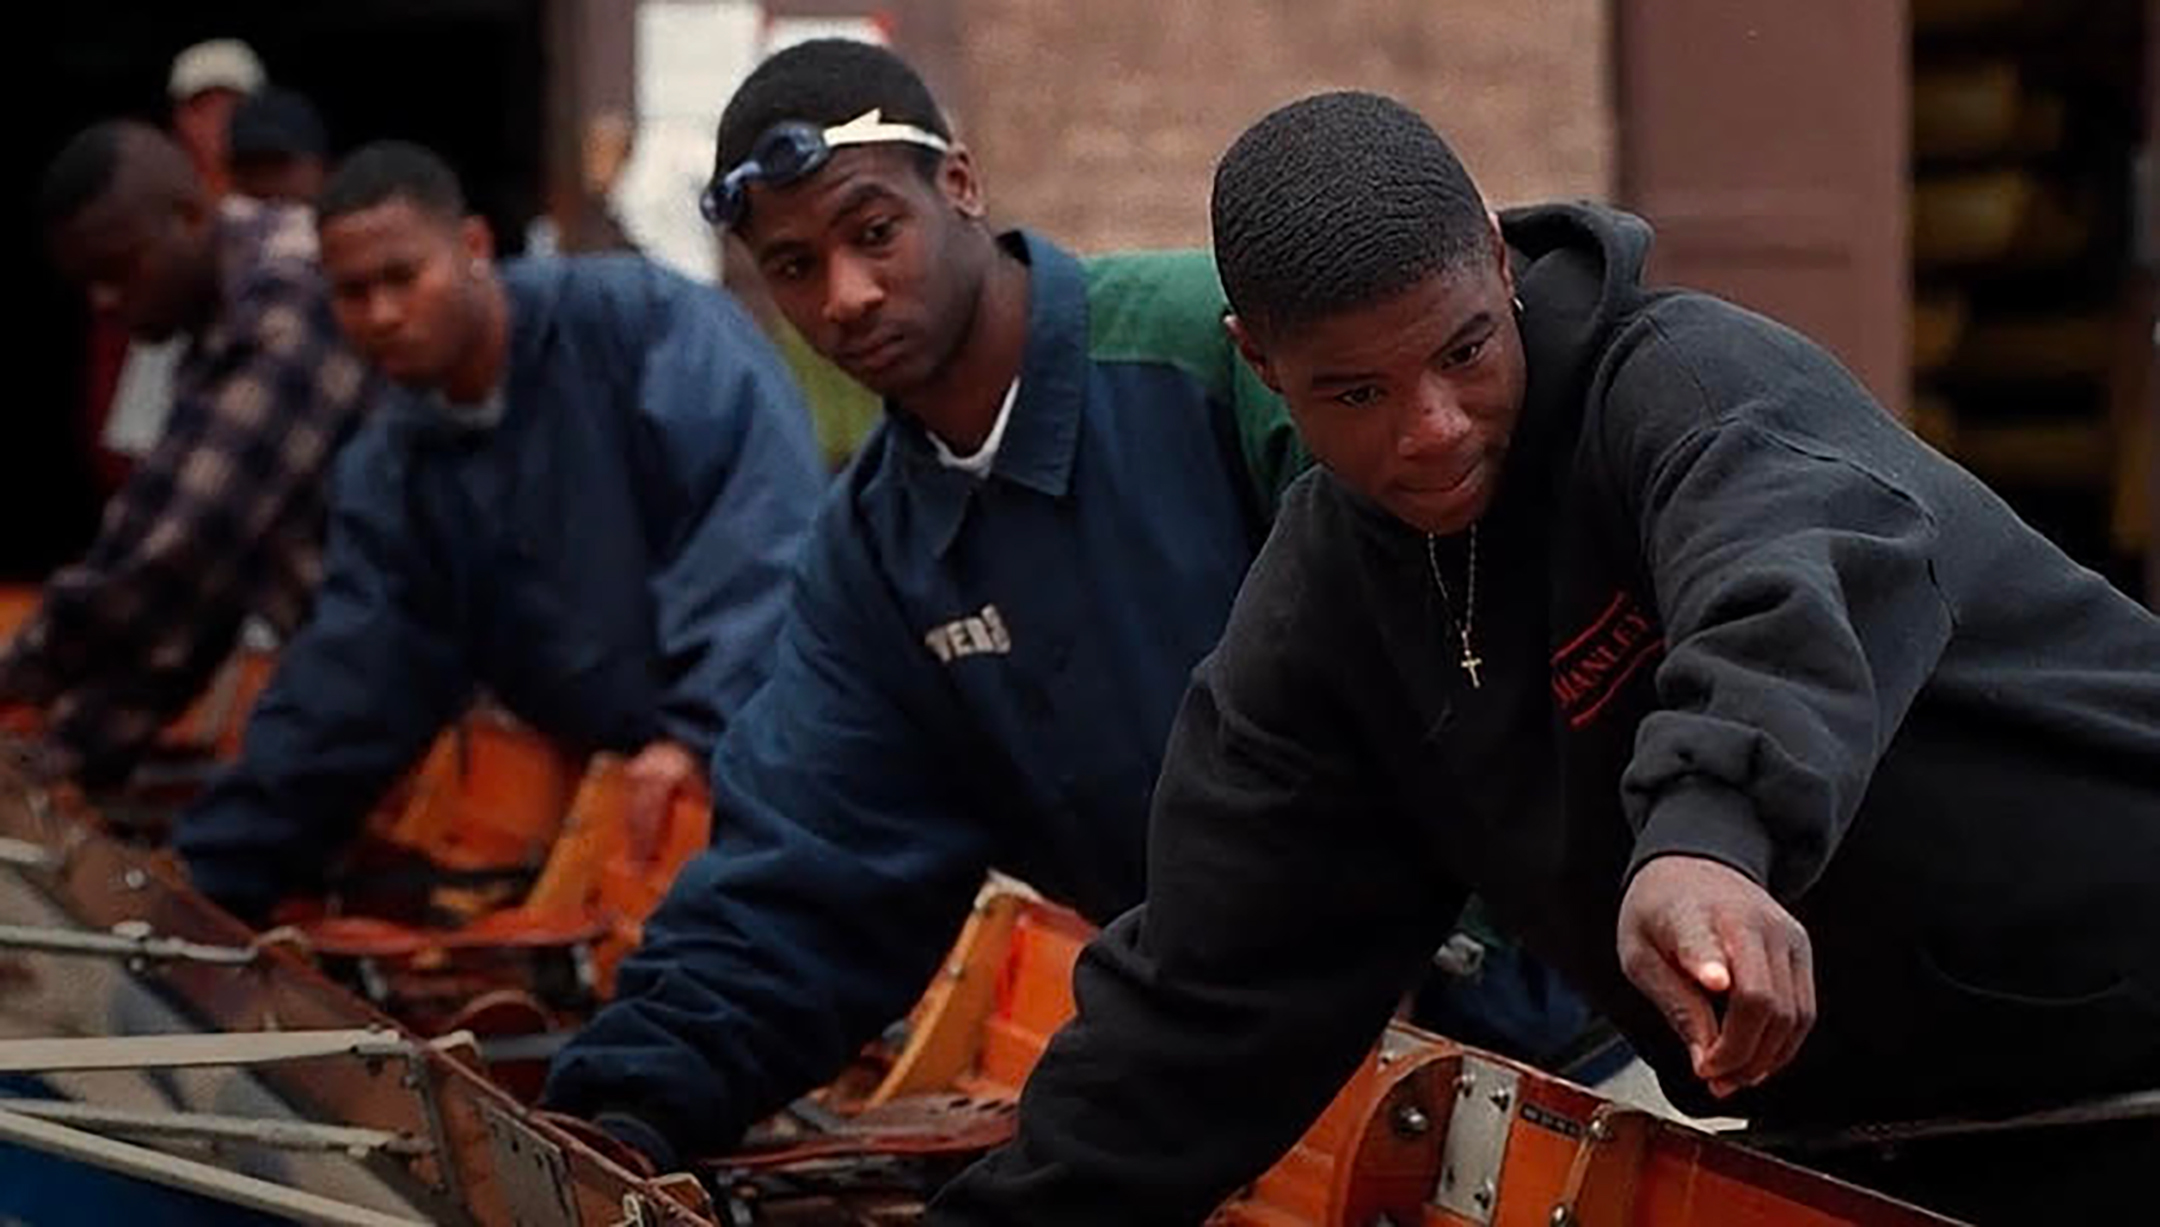 A group of young black men work on a boat for their crew team